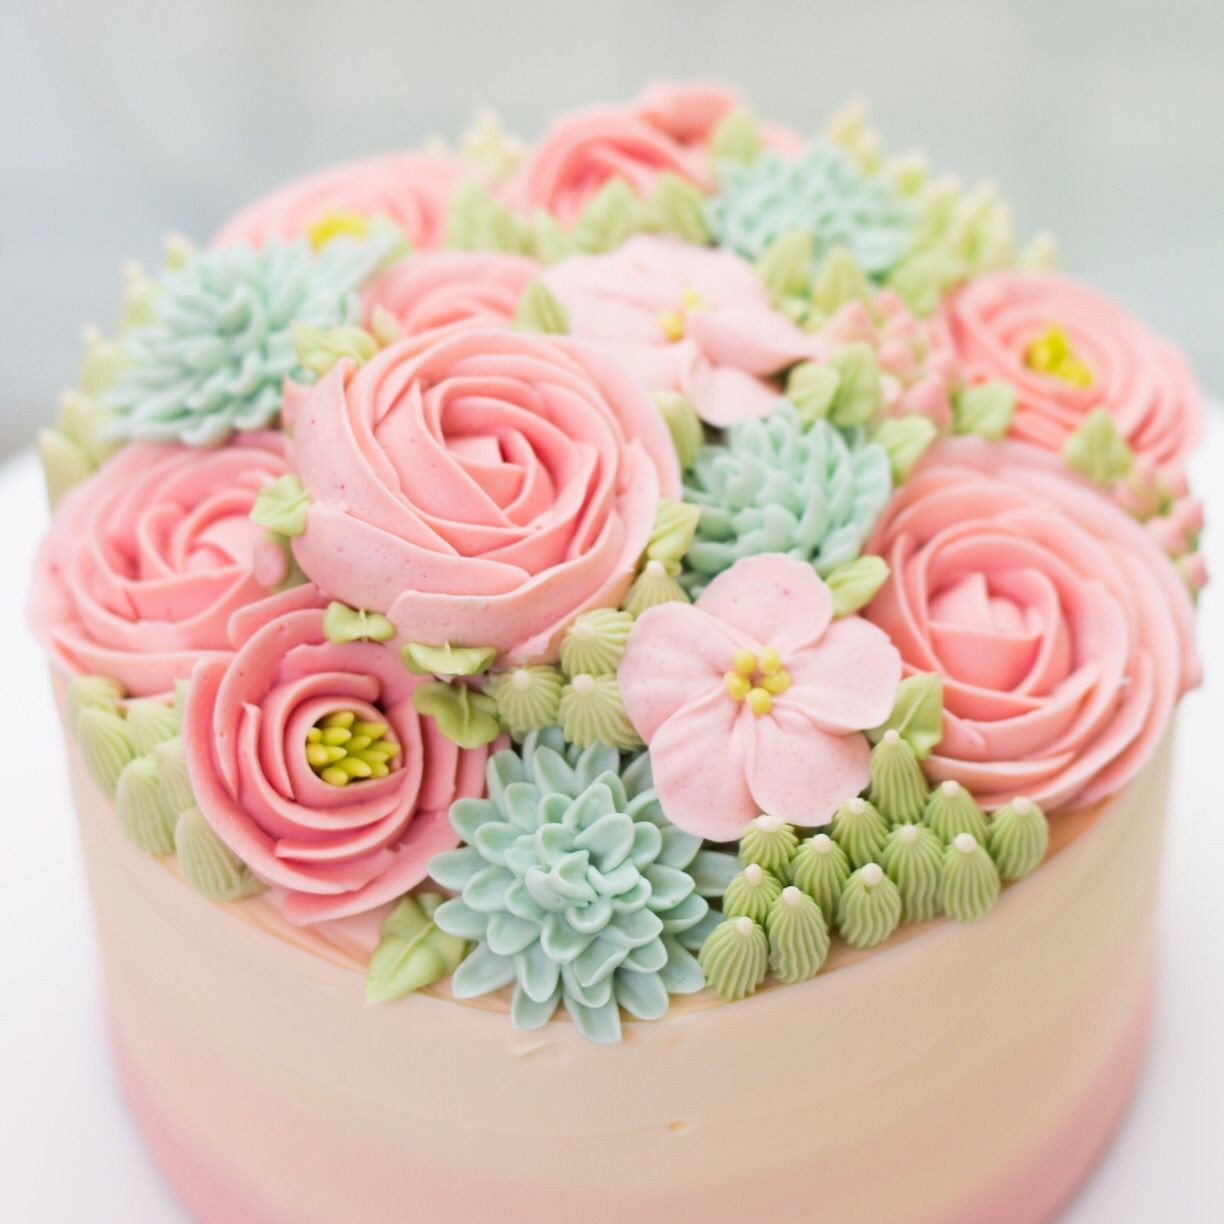 So pretty buttercream flowers so delicate on a cake learn how to buttercream flowers so delicate on a cake learn how to make this cake at our workshop in london mightylinksfo